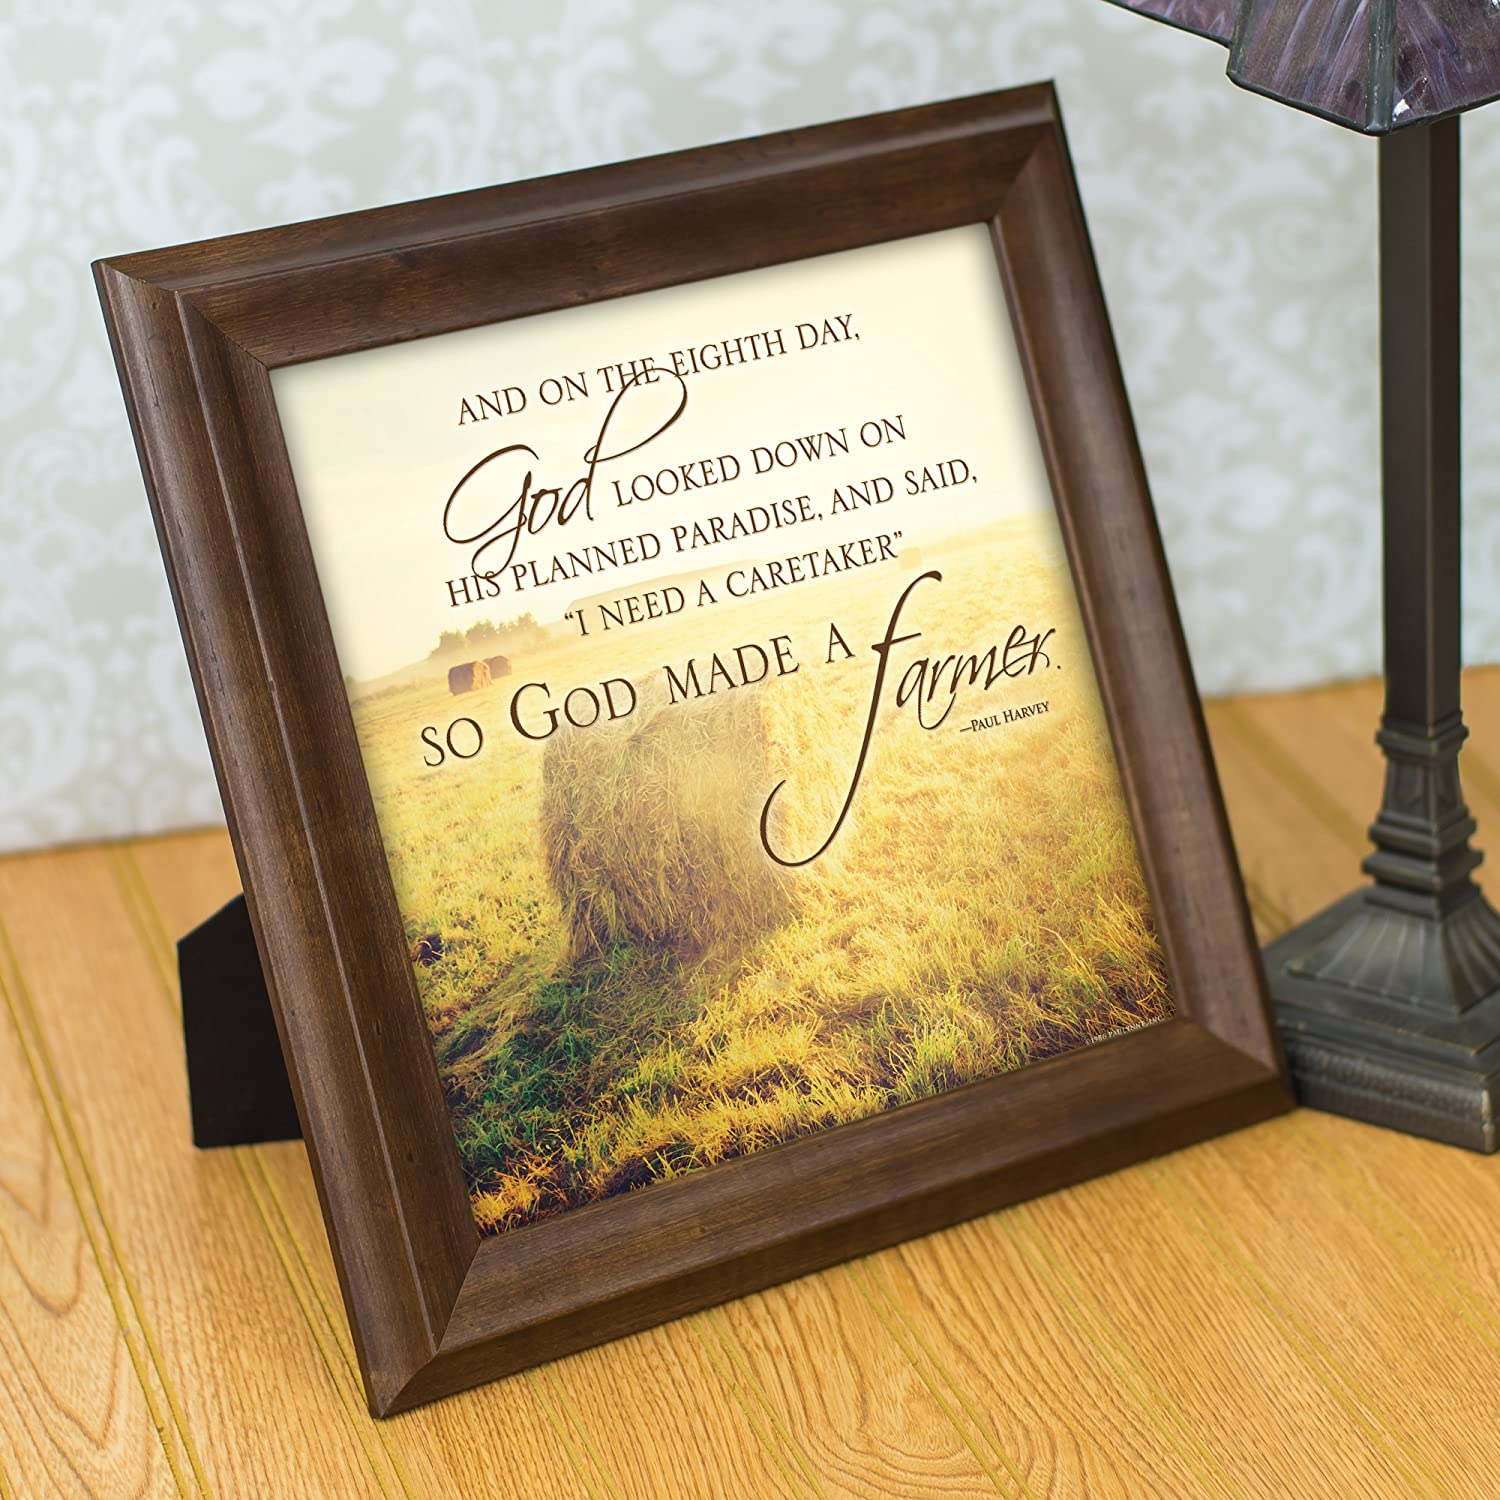 Amazon.com: So God Made a Farmer Hay Bales 12 x 12 Framed Art Wall ...